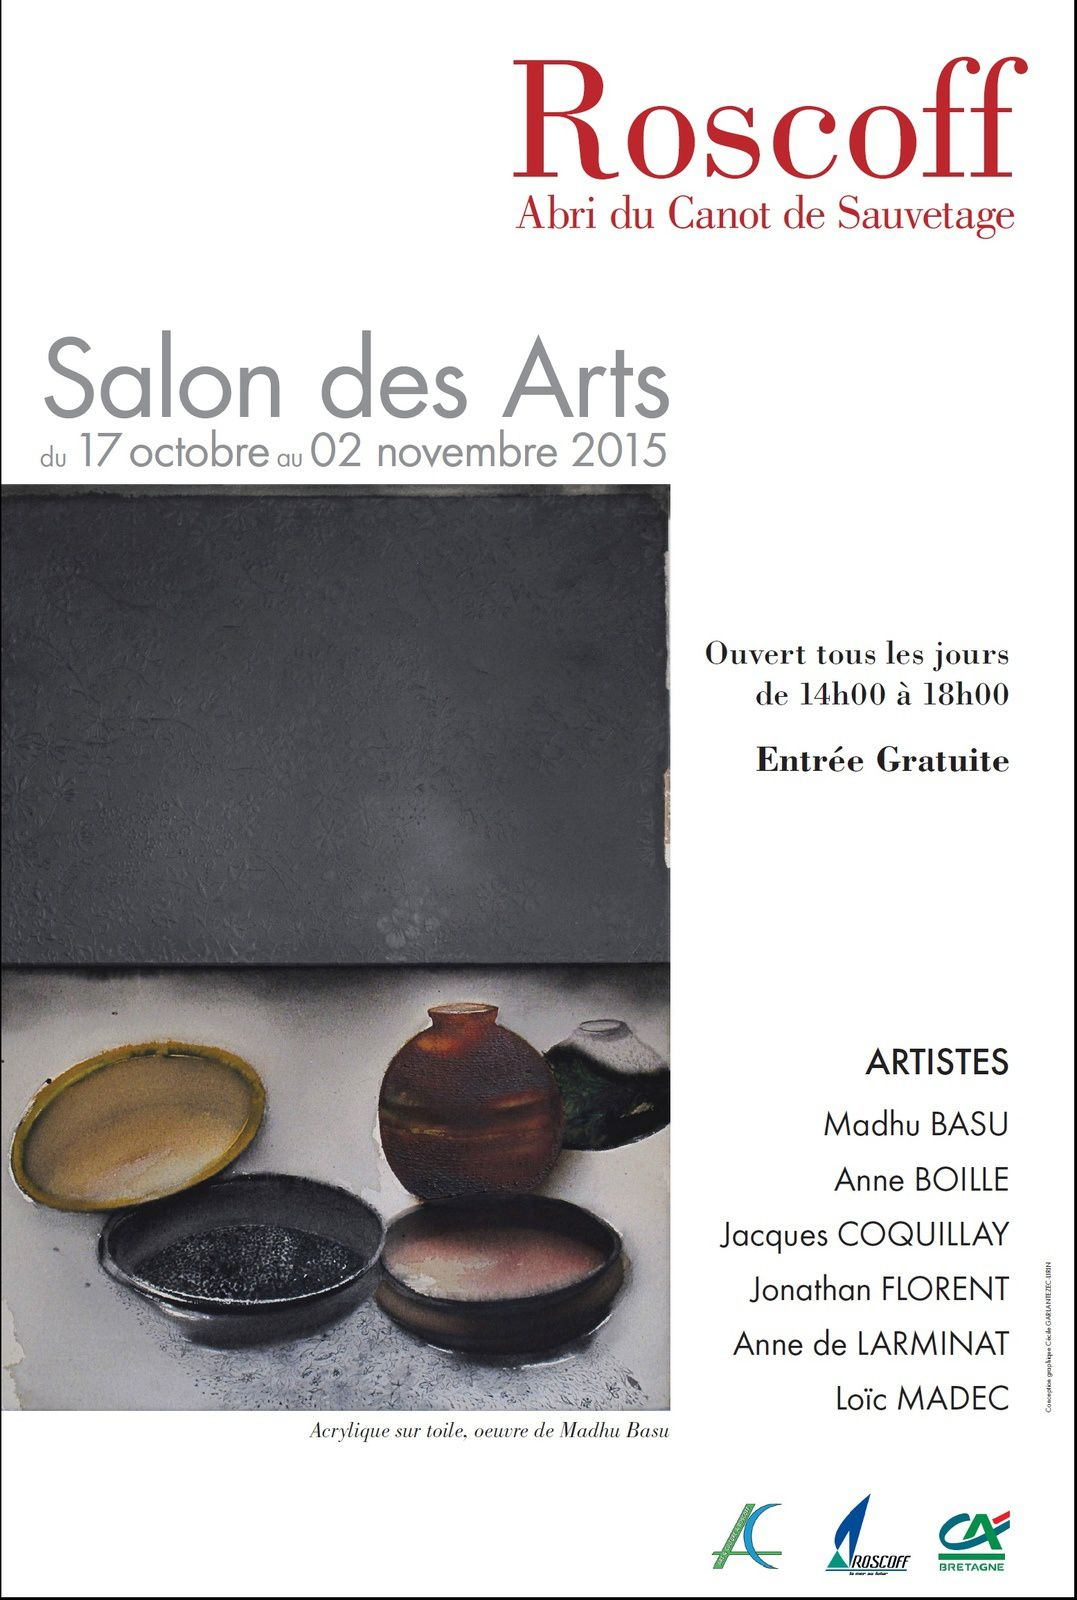 Du 17 octobre au 2 novembre : SALON DES ARTS 2015